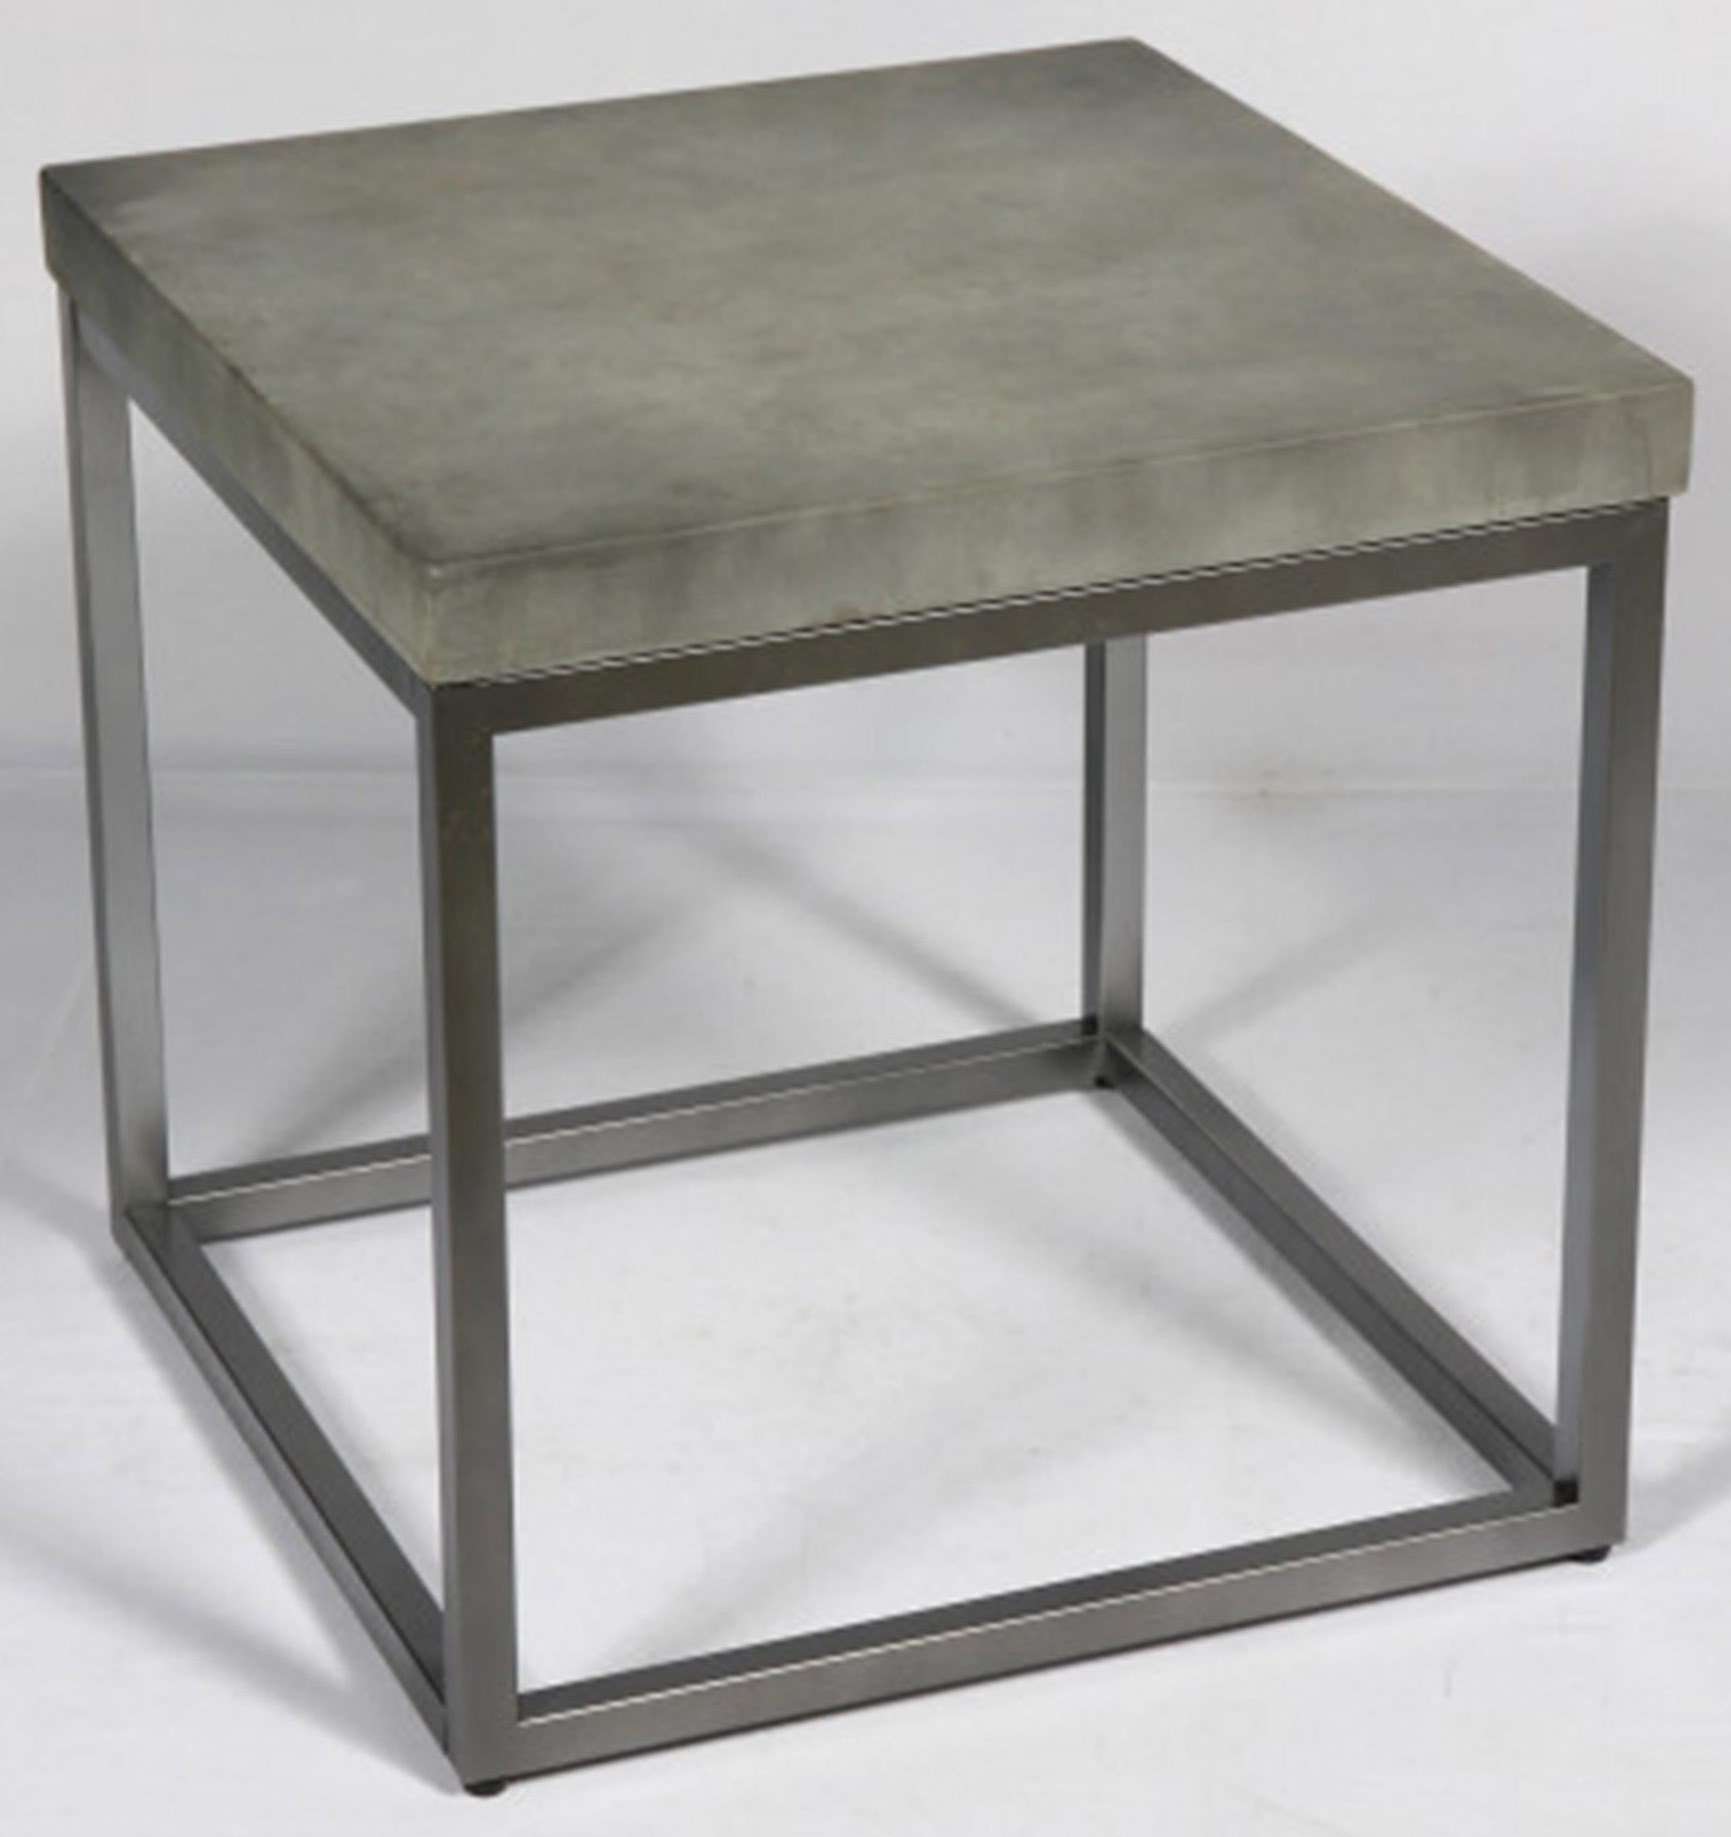 Concrete-Finish & Brushed Nickel End Table